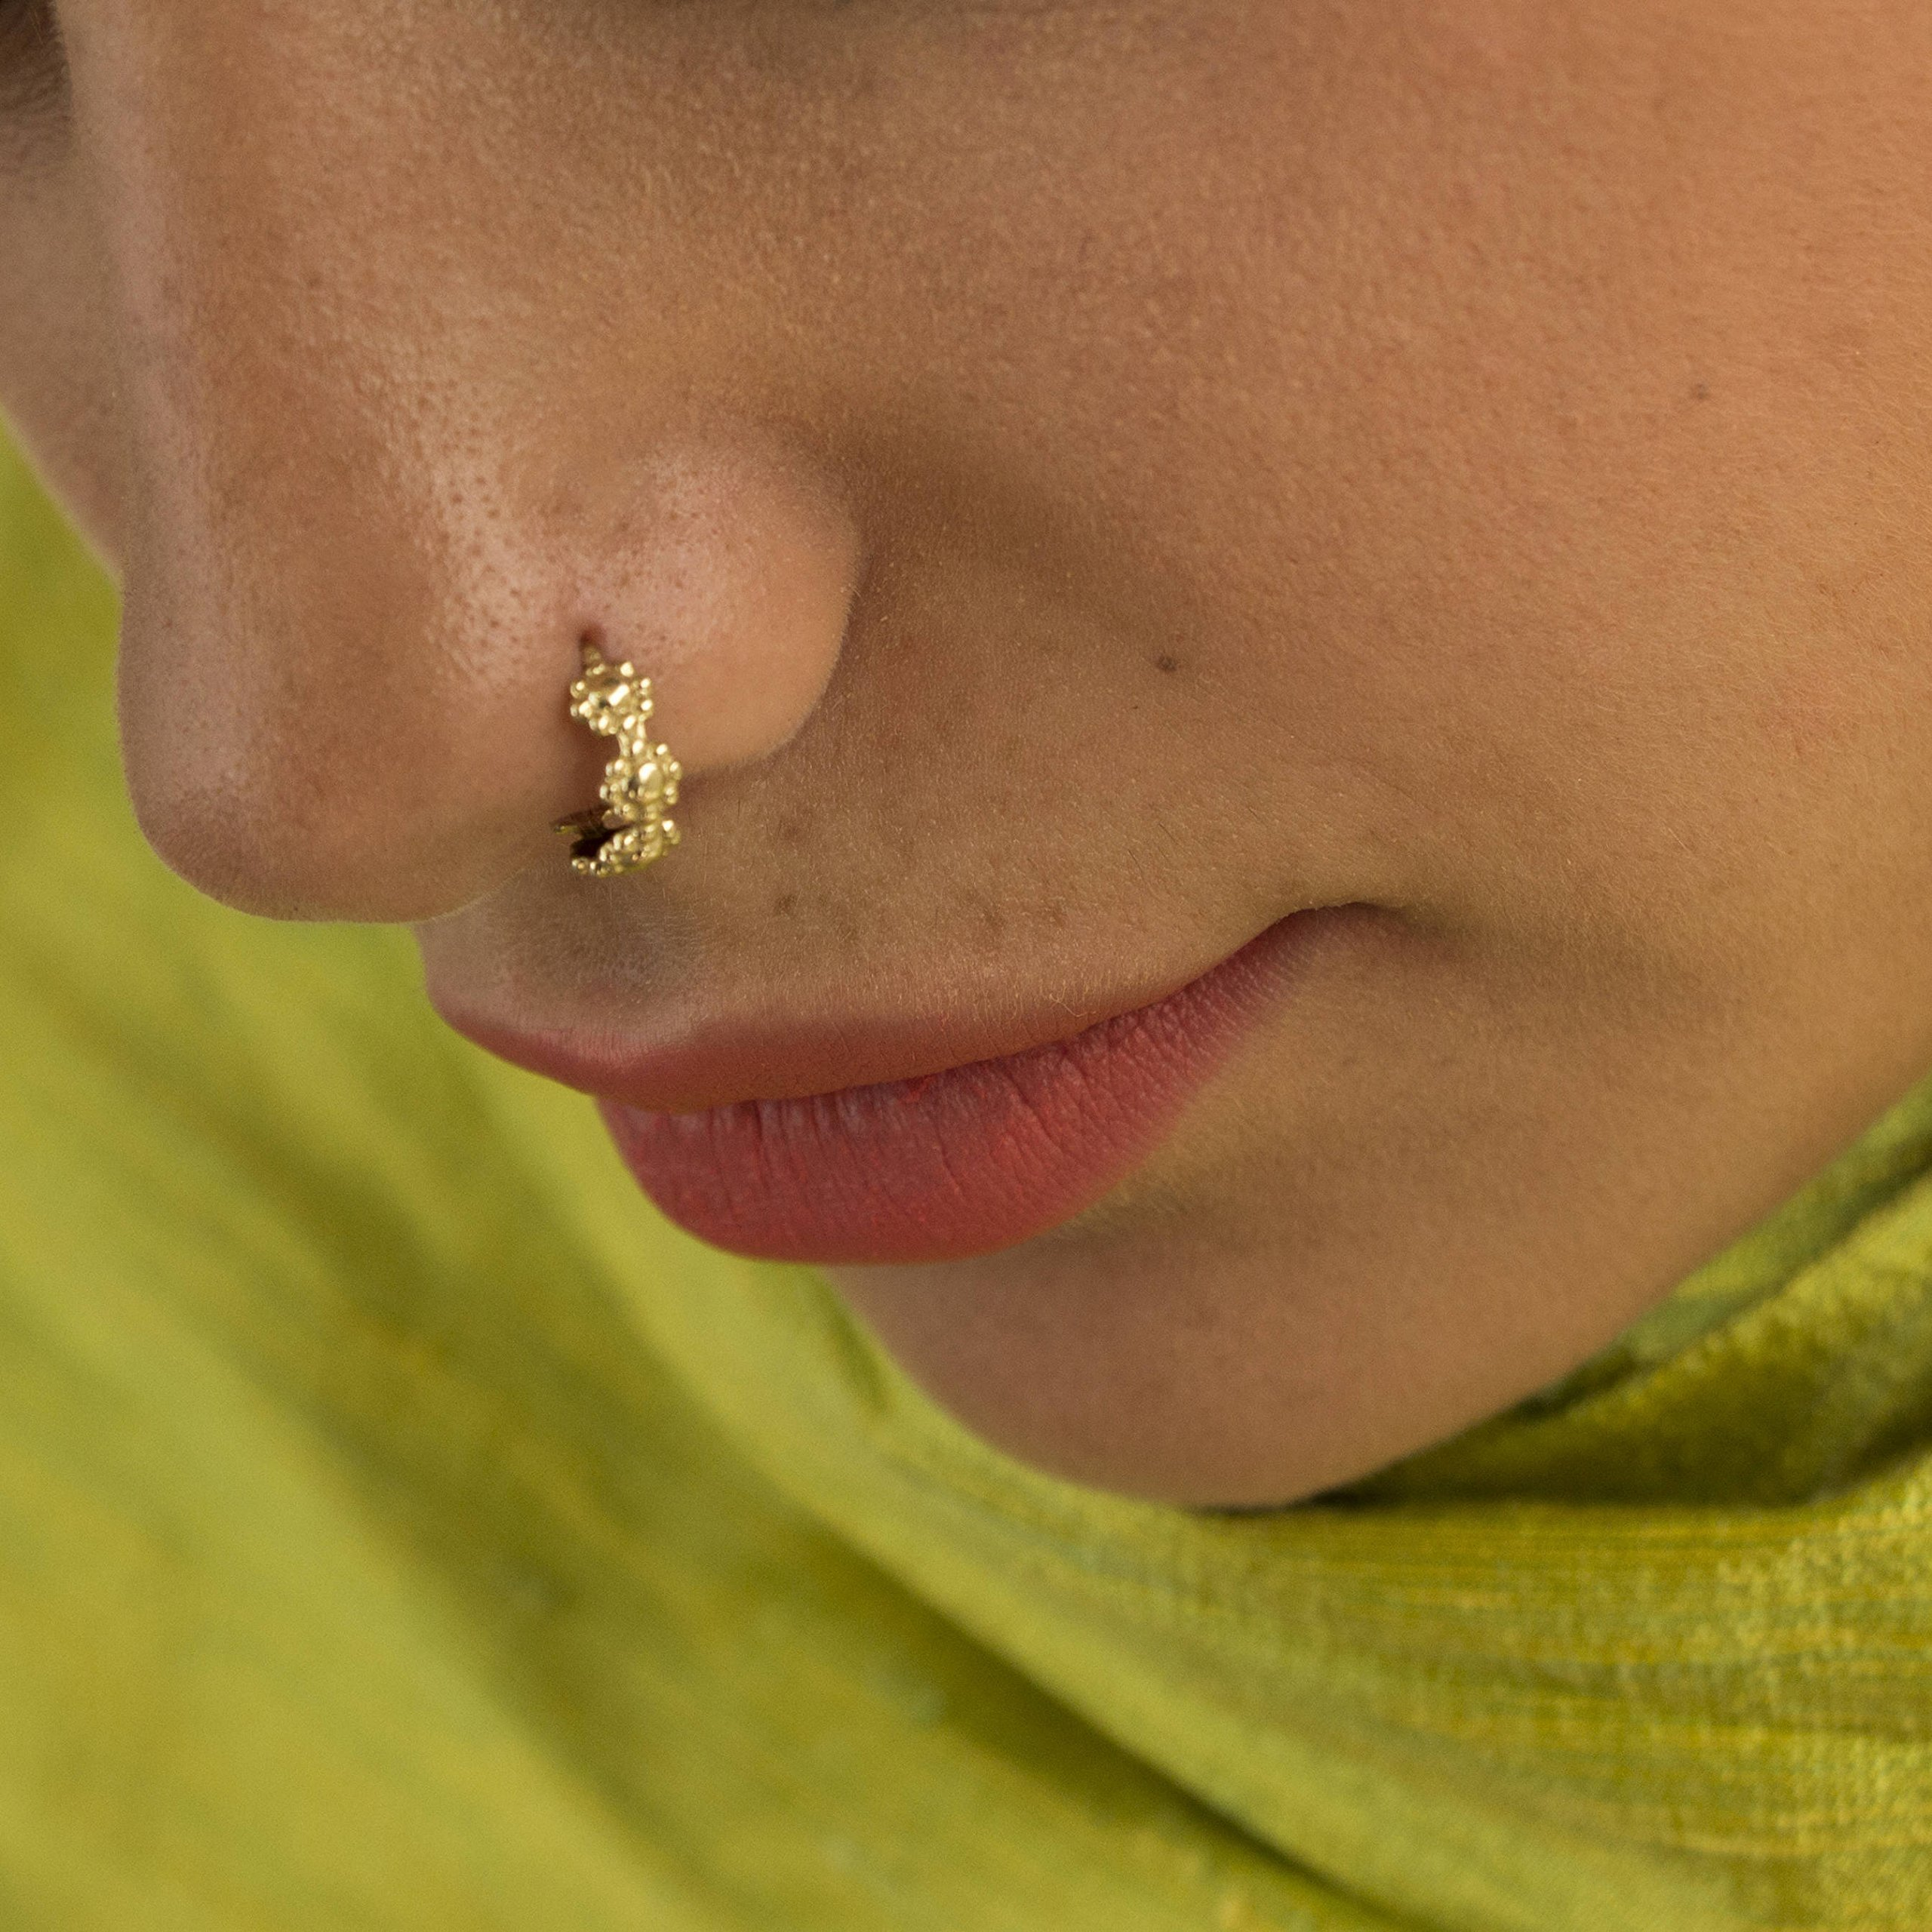 Flower Gold Nose Ring, Indian 14K Solid Gold Tribal Style Nose Hoop, Fits Cartilage, Helix, Tragus Earring, Handmade Piercing Jewelry, 20g